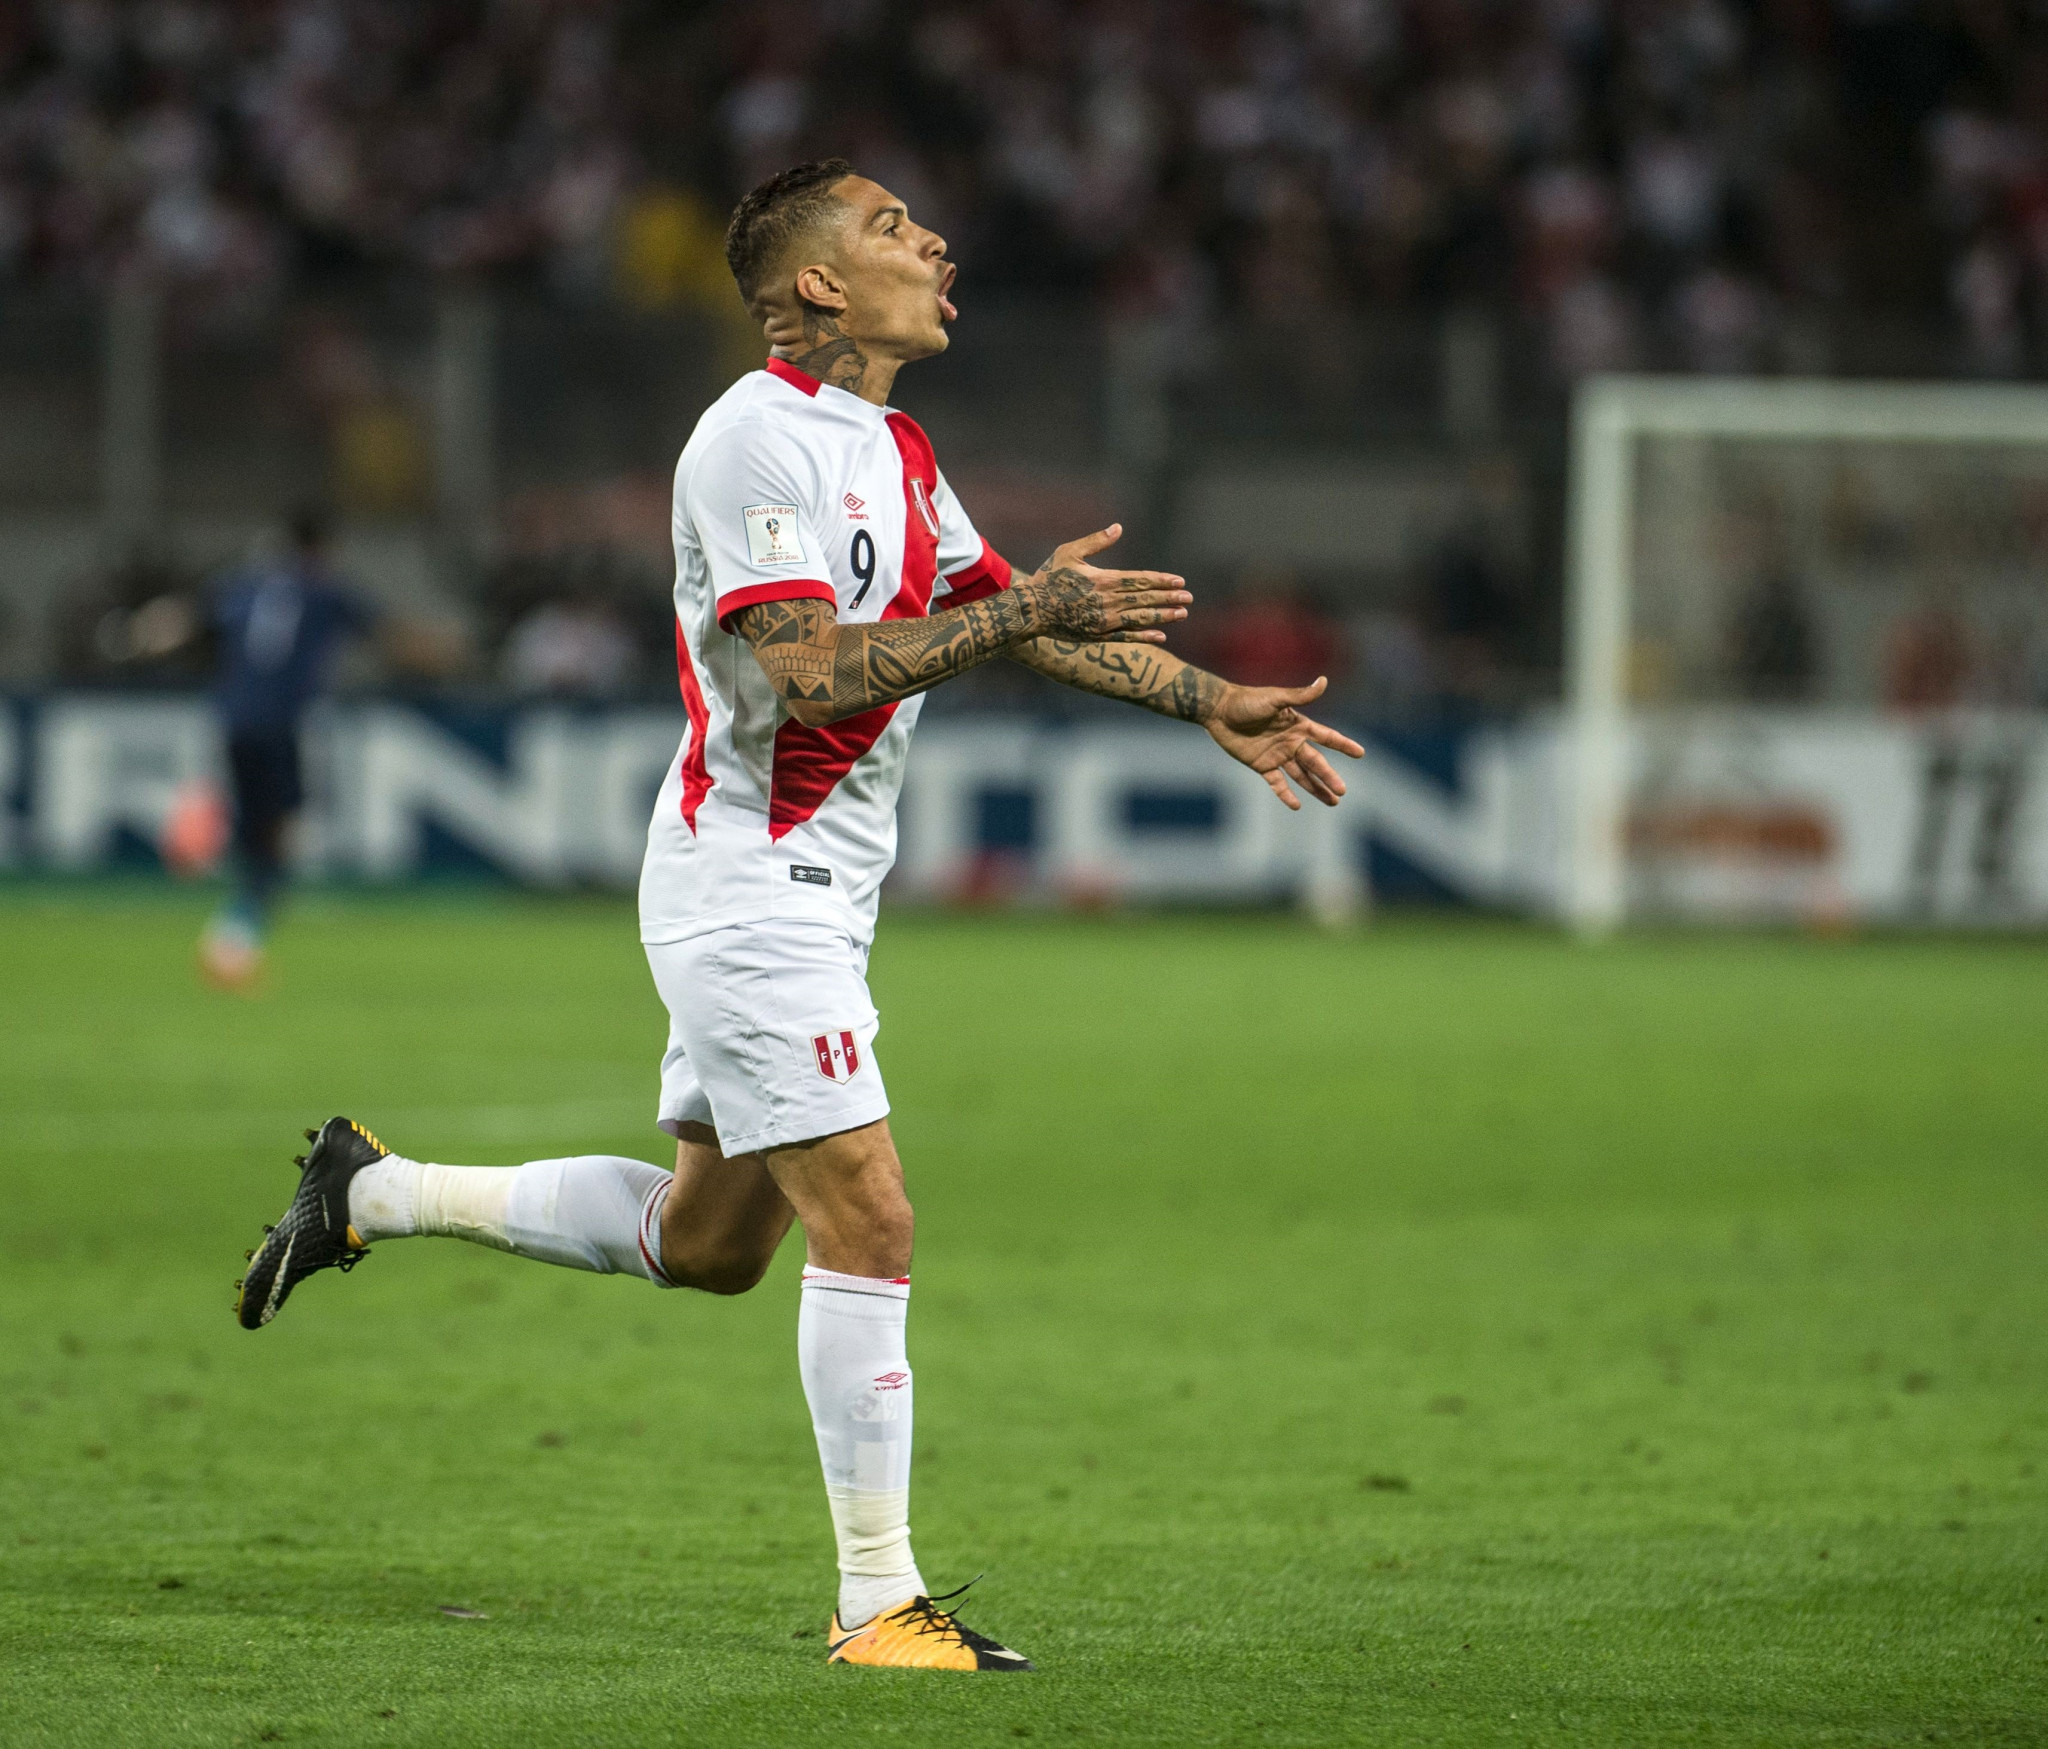 World players' union FIFPro says it has written to FIFA to request that Peru captain Paolo Guerrero be permitted to take part in the 2018 World Cup ©Getty Images